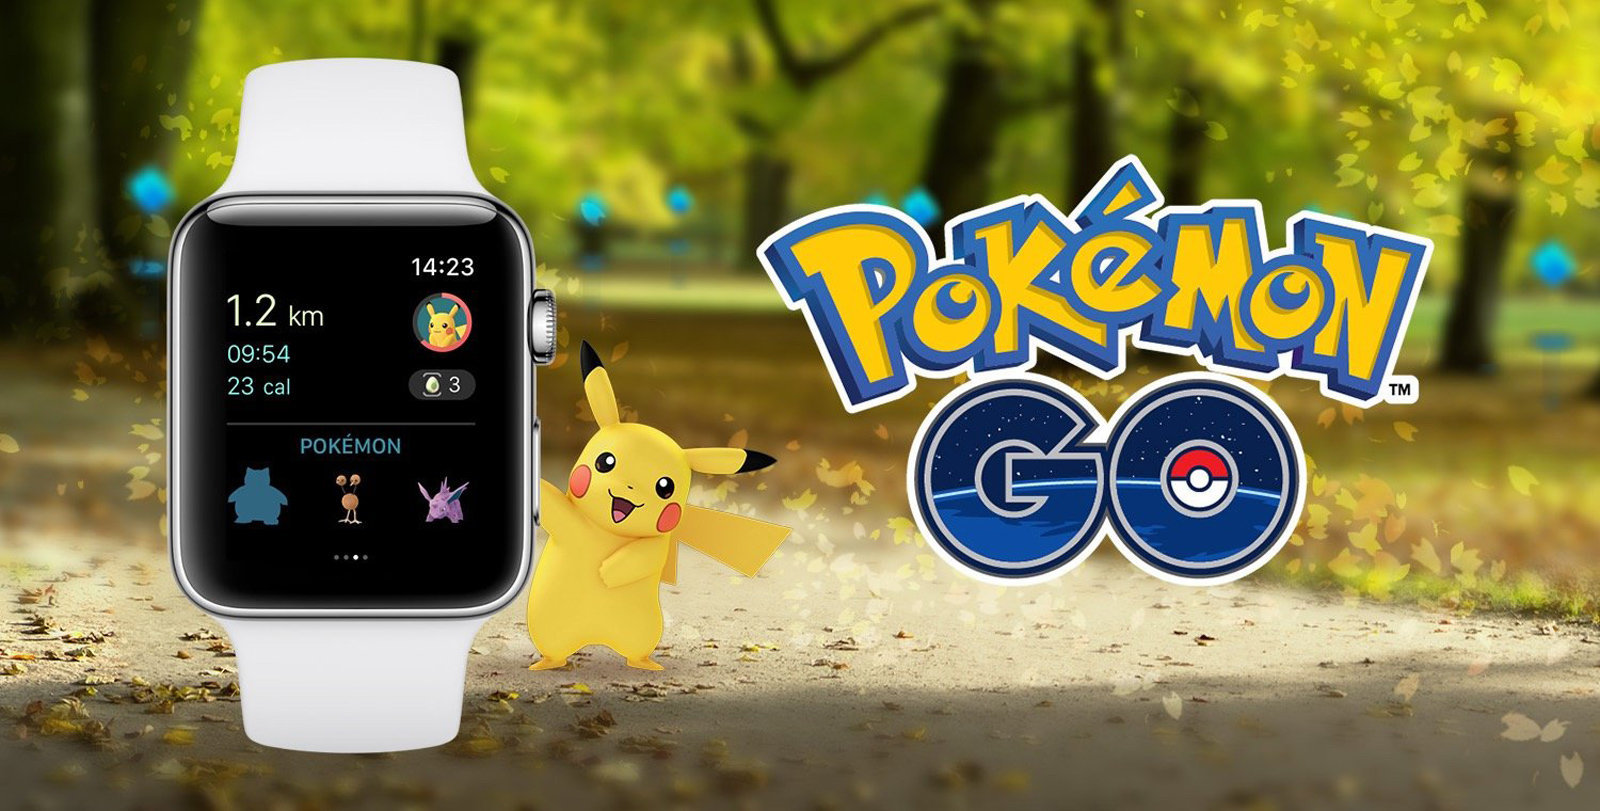 Pokémon Go' will drop Apple Watch support after July 1st.